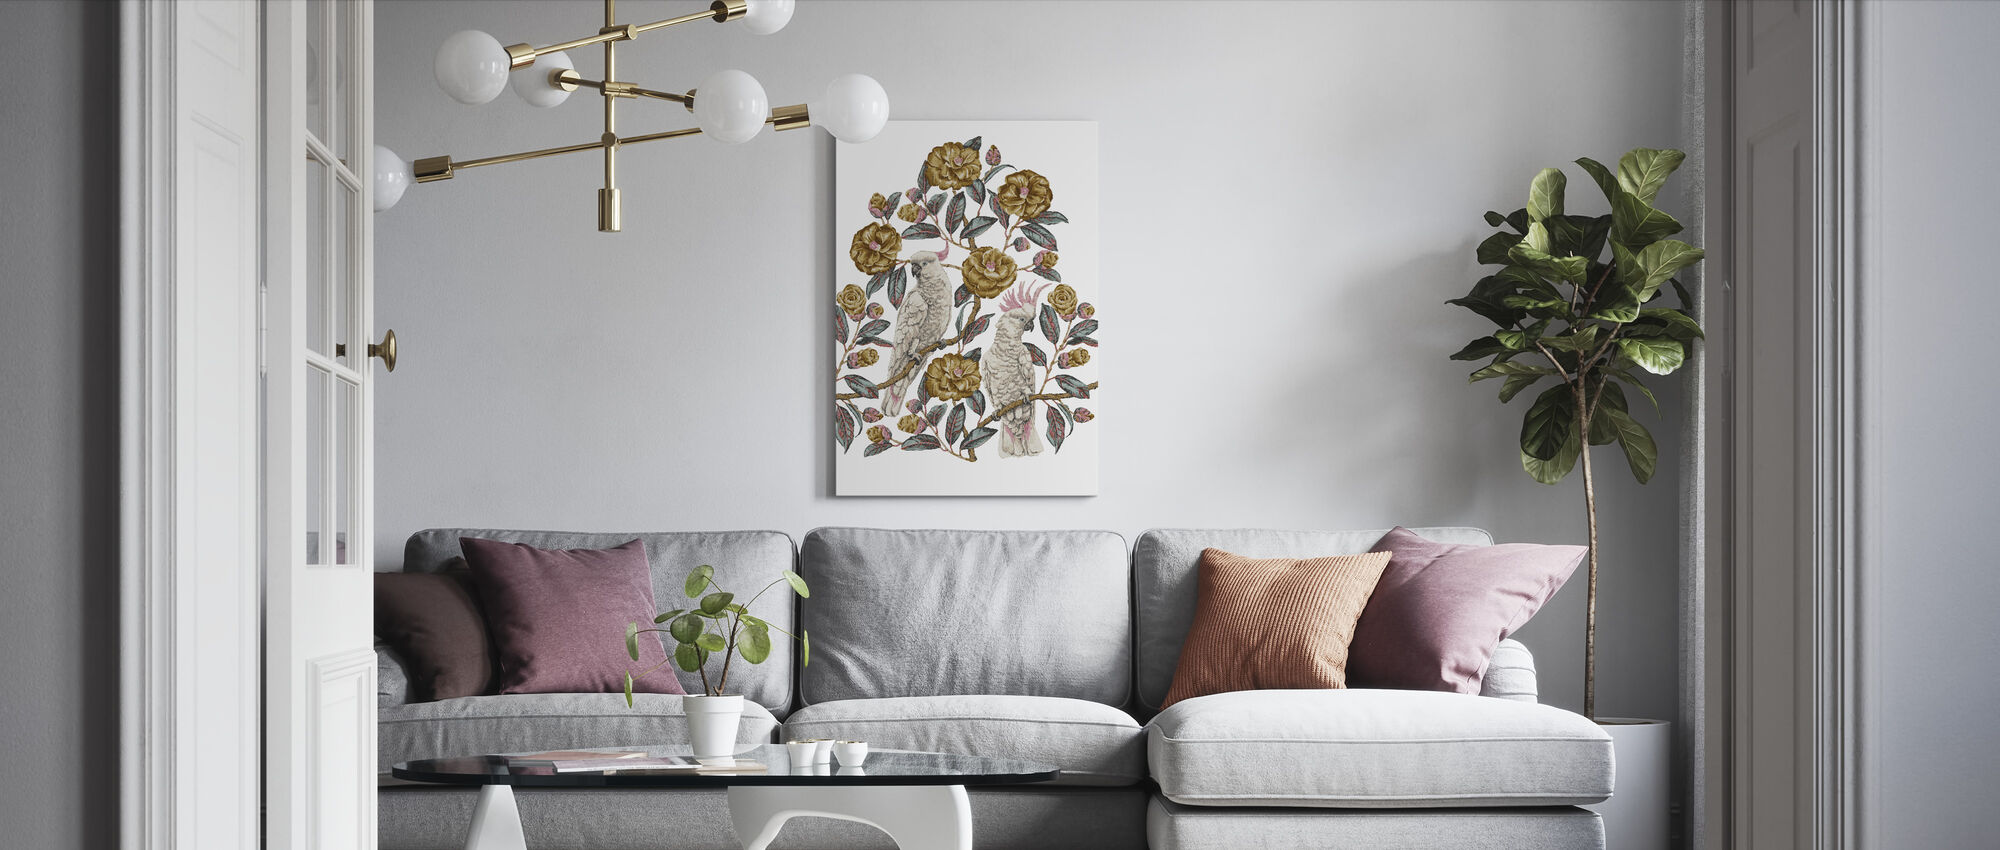 Cockatoo Paradise - Honey and Silver - Canvas print - Living Room